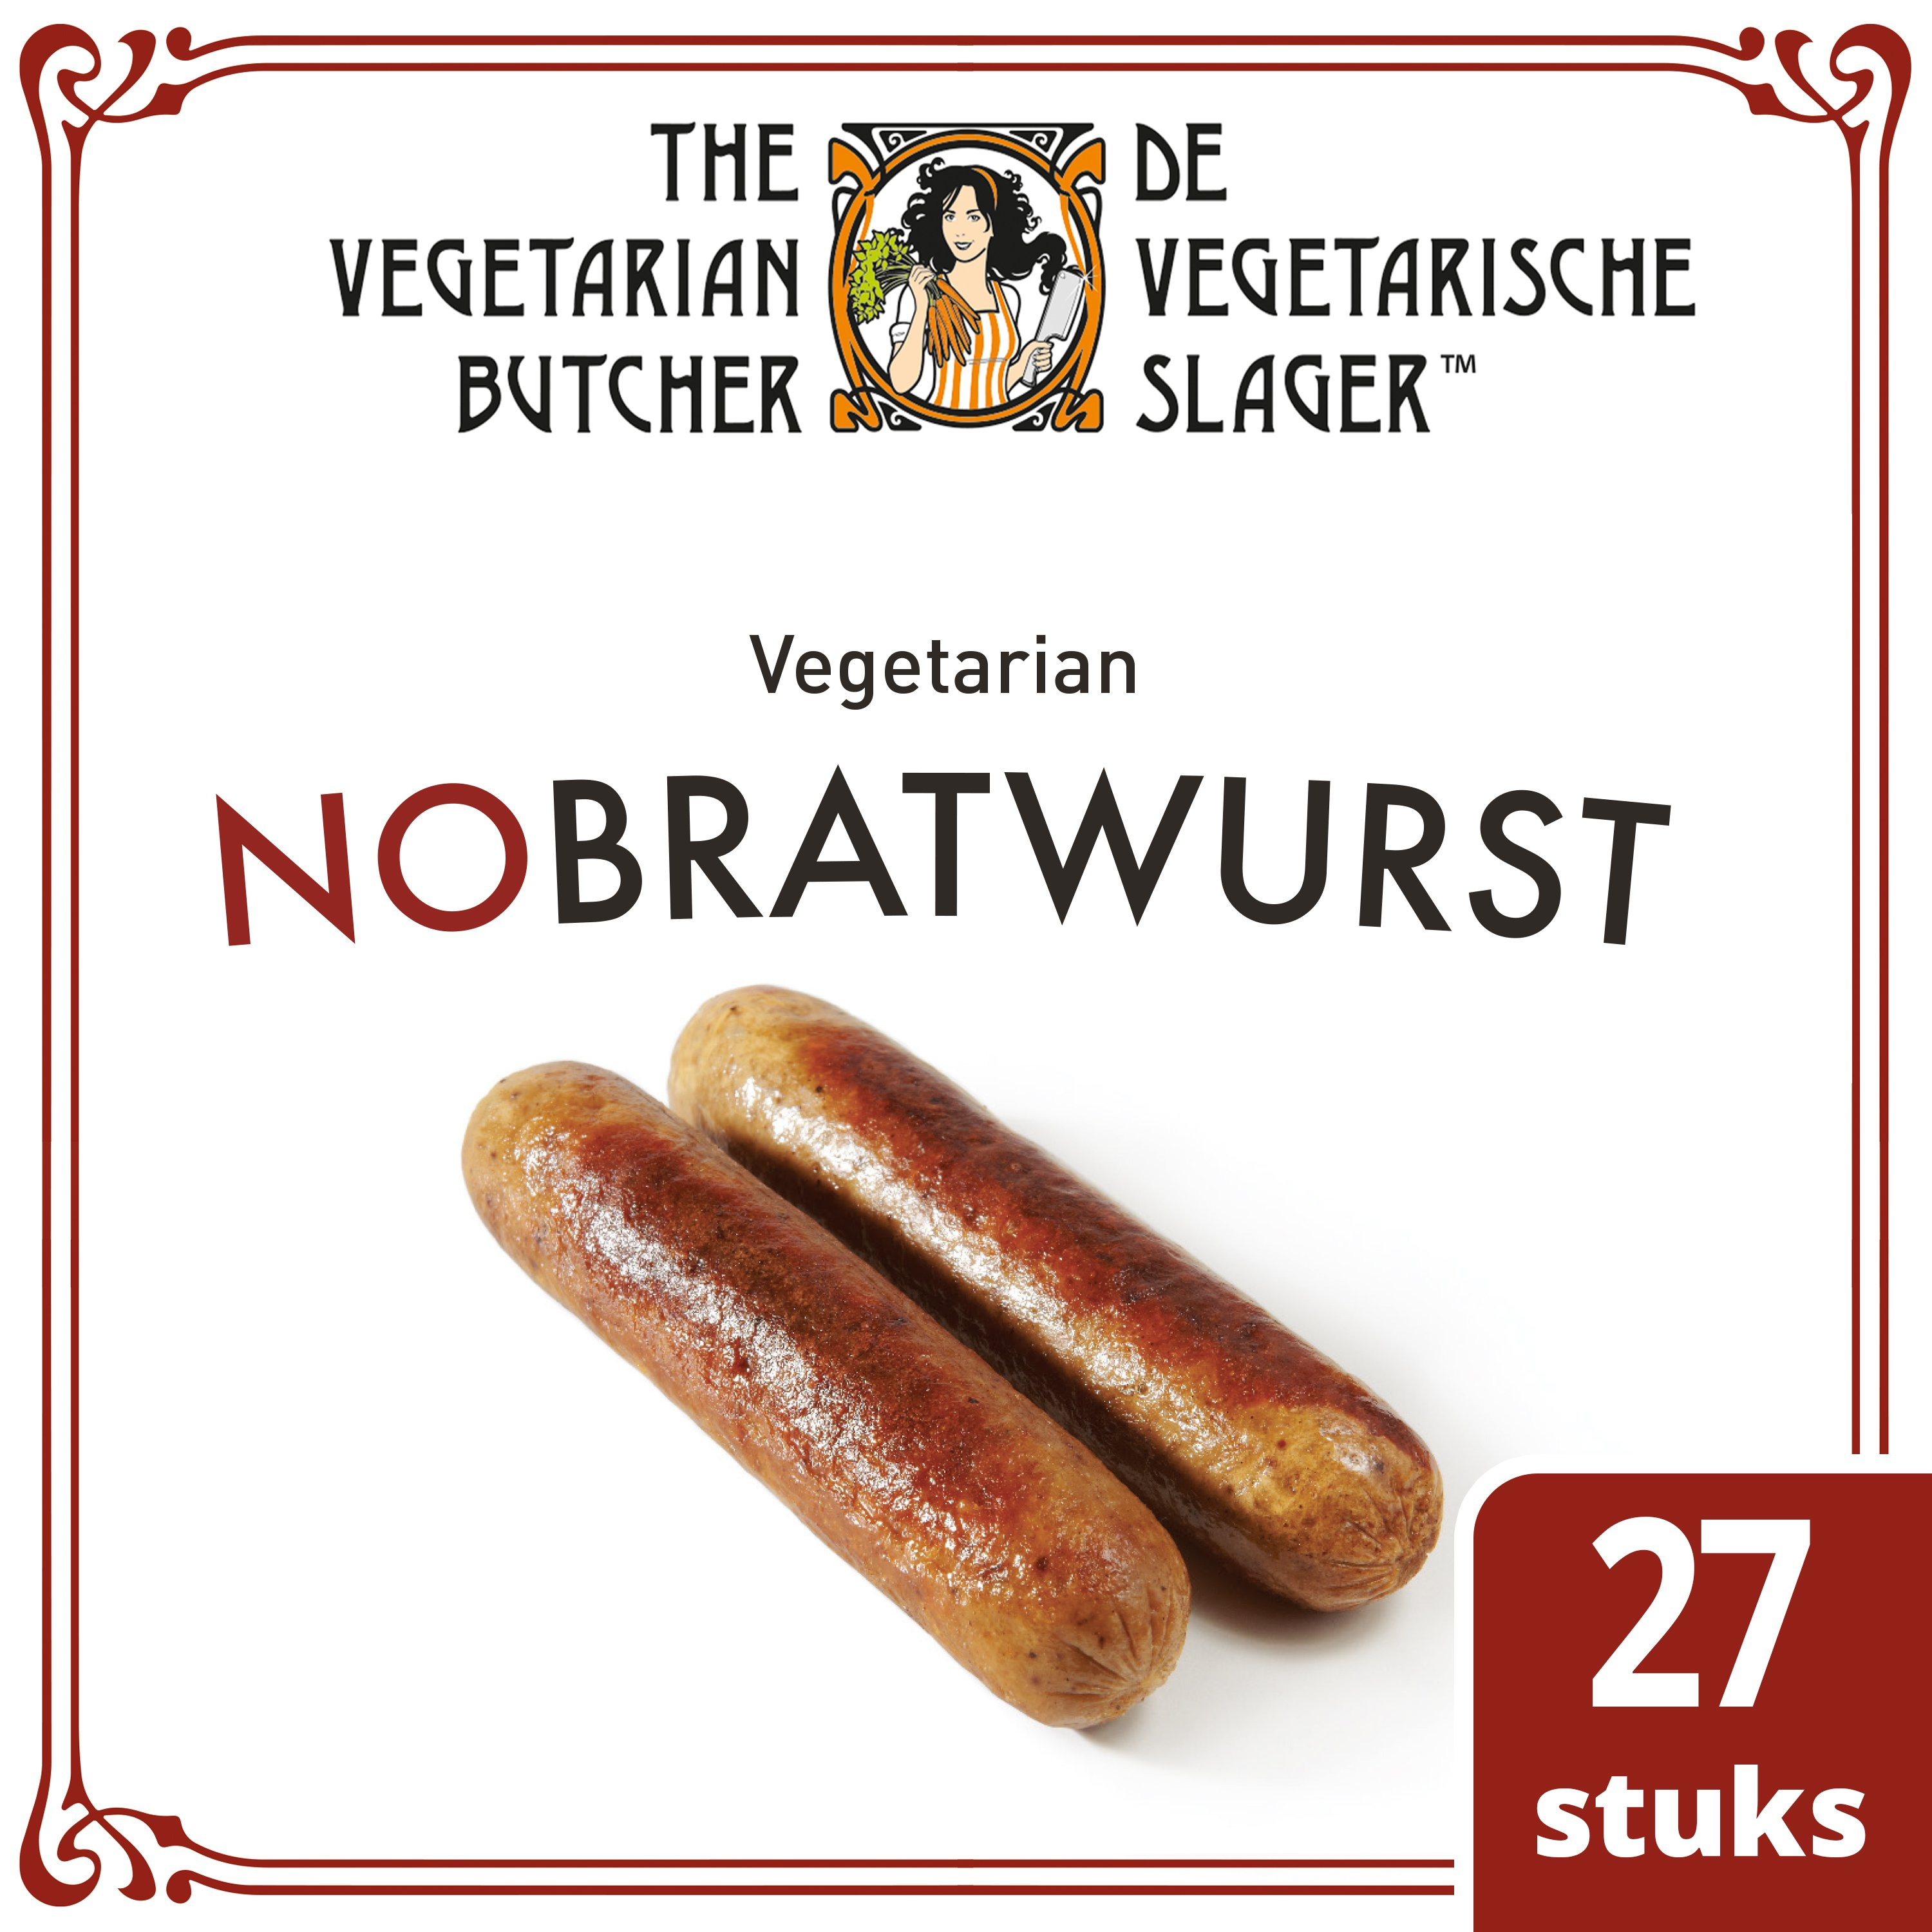 The Vegetarian Butcher NoBratwurst 2.16 kg -